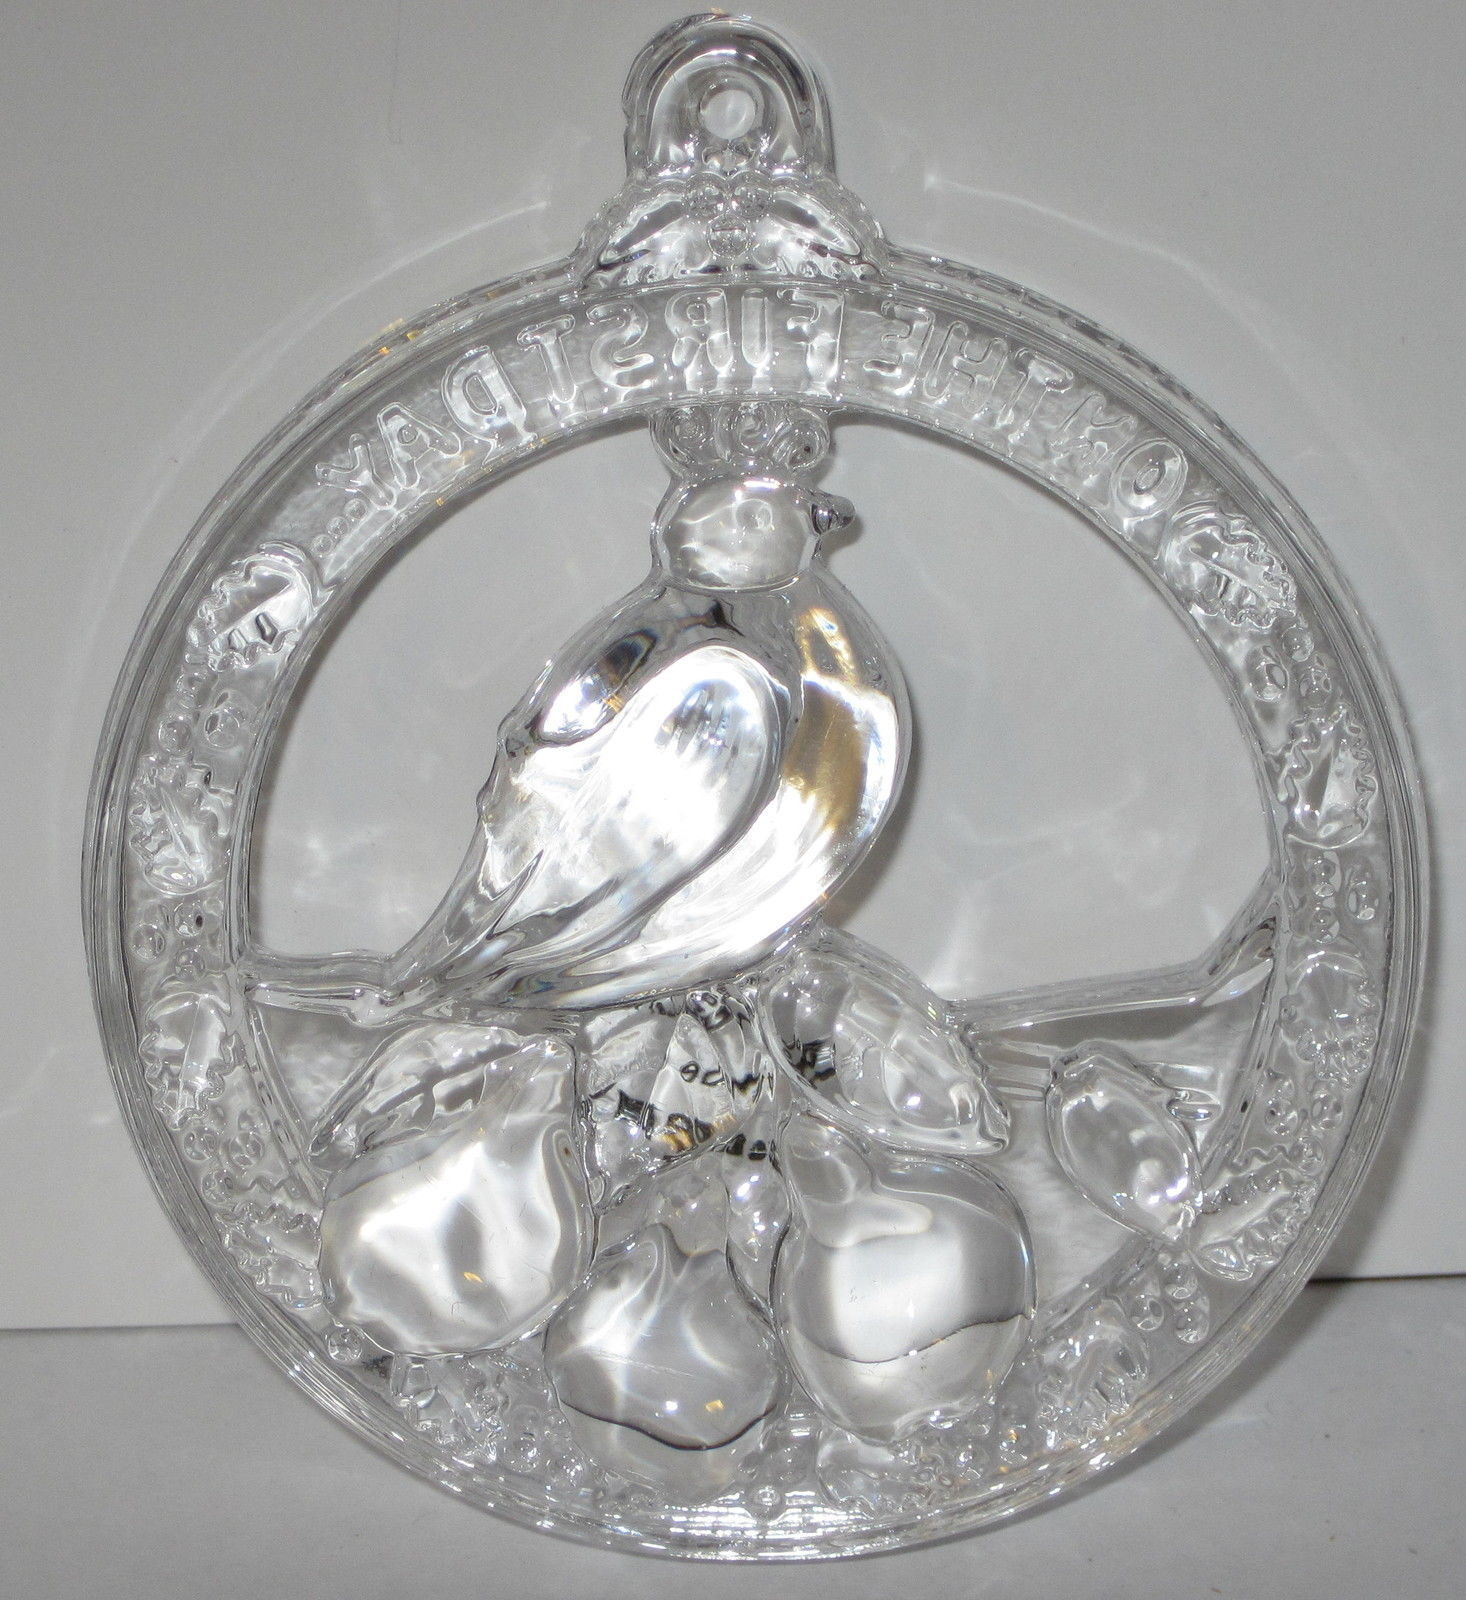 NIB Wallace crystal ornament First Day of Christmas Partridge in a Pear Tree LE image 2